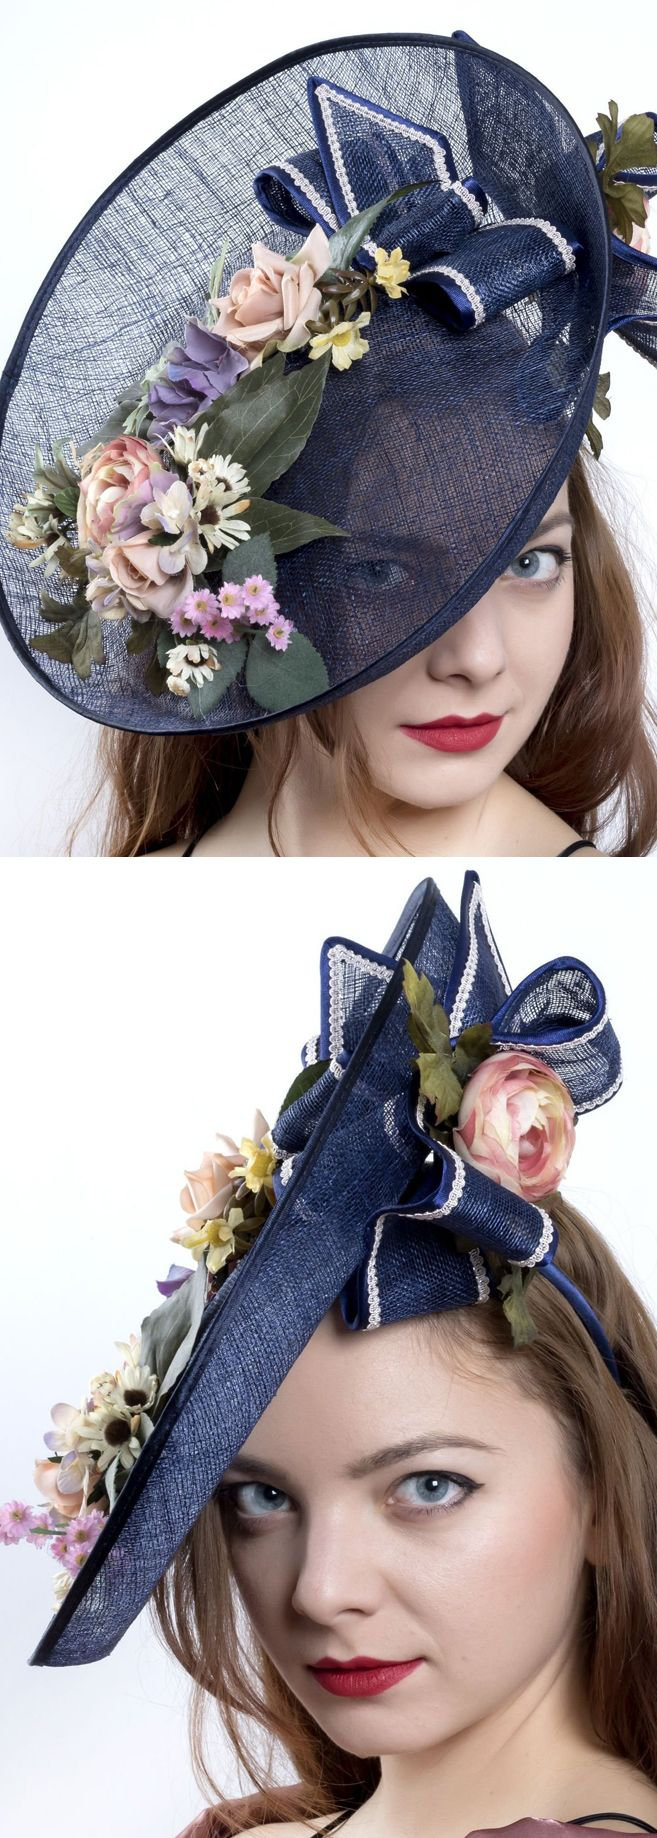 Navy Pink Green Floral Headpiece Hat Fascinator for Raceday Fashion, Kentucky Oaks or Derby Day, with  Floral and Bows arrangement. Also perfect hat for Royal Ascot, Del Mar Races or Melboune Cup and pretty for a Mother of the Bride. Handmade on Etsy. Kentucky Derby Outfit Ideas and Inspiration. #kentuckyderby #derbyhats #royalascot #ascot #hats #millinery #fascinators #bighats #ladiesday #floralfashion #racingfashion #motherofthebride #affiliatelink #etsyfinds #delmarraces